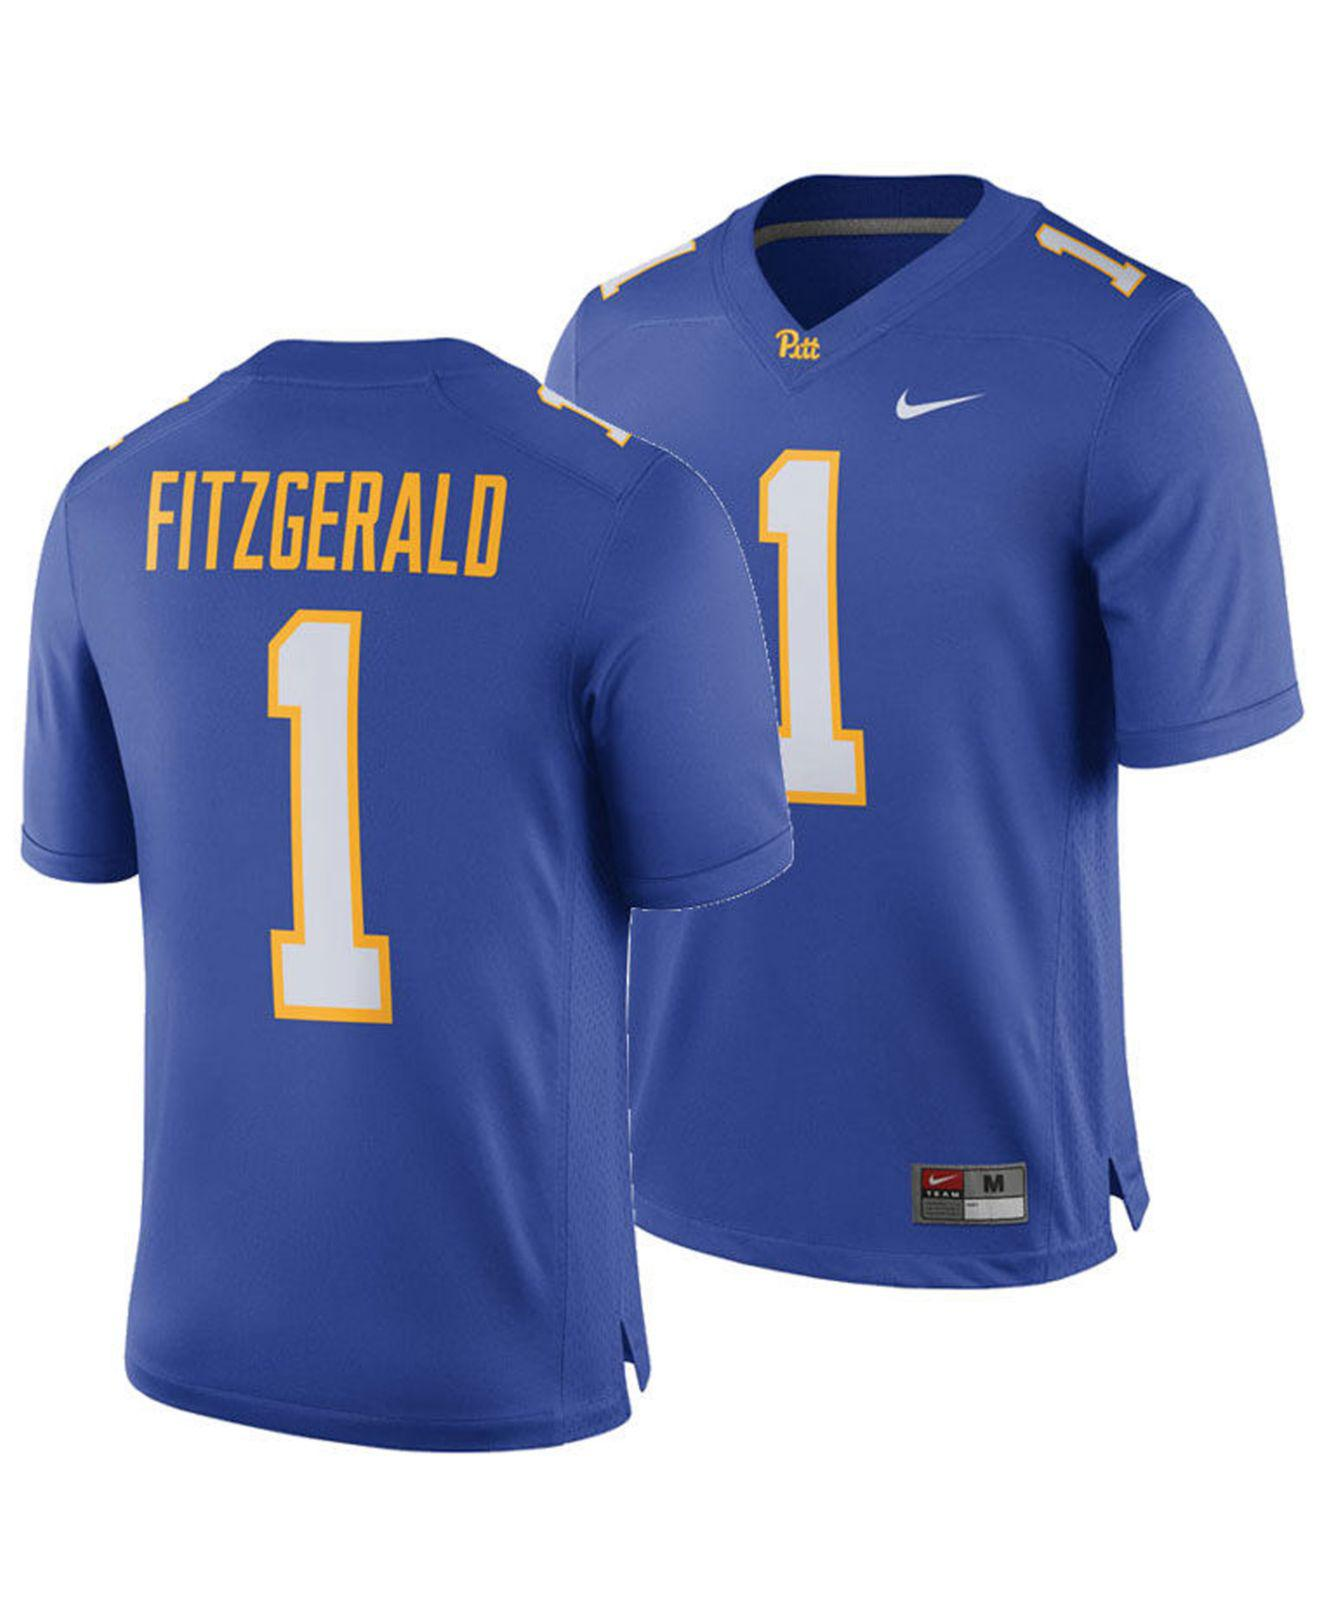 promo code 46ce8 c48d2 Lyst - Nike Larry Fitzgerald Pittsburgh Panthers Player Game ...